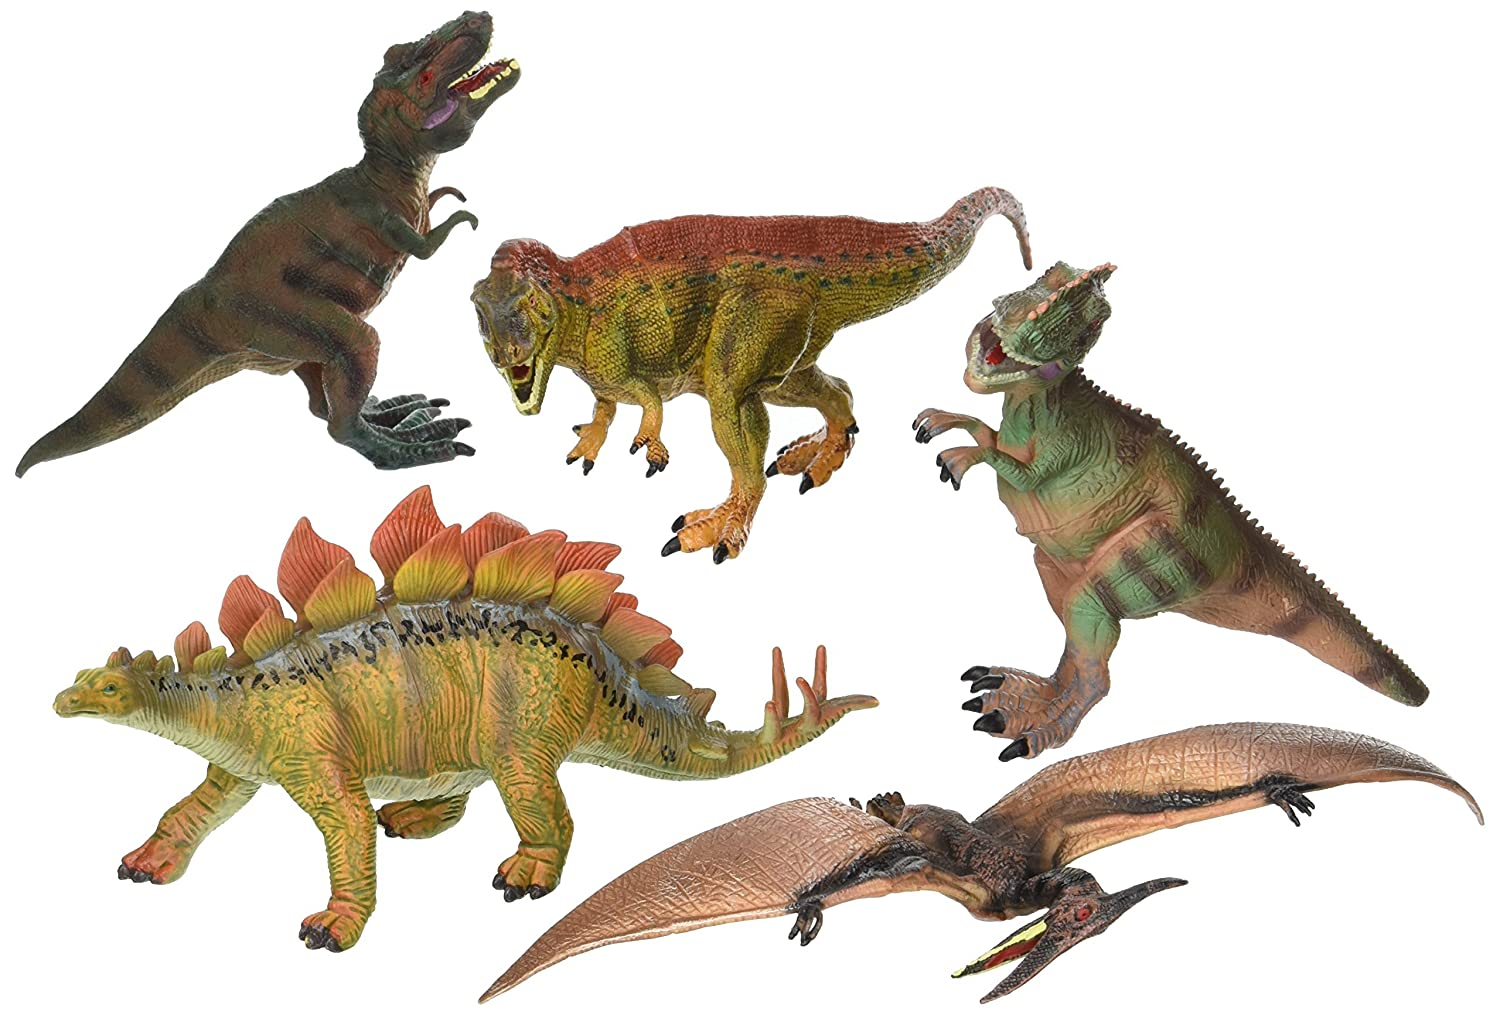 Kids Imaginative Dinosaurs Small & Large Plastic Assorted Toy Dinosaurs 5 Piece Set, 6.4